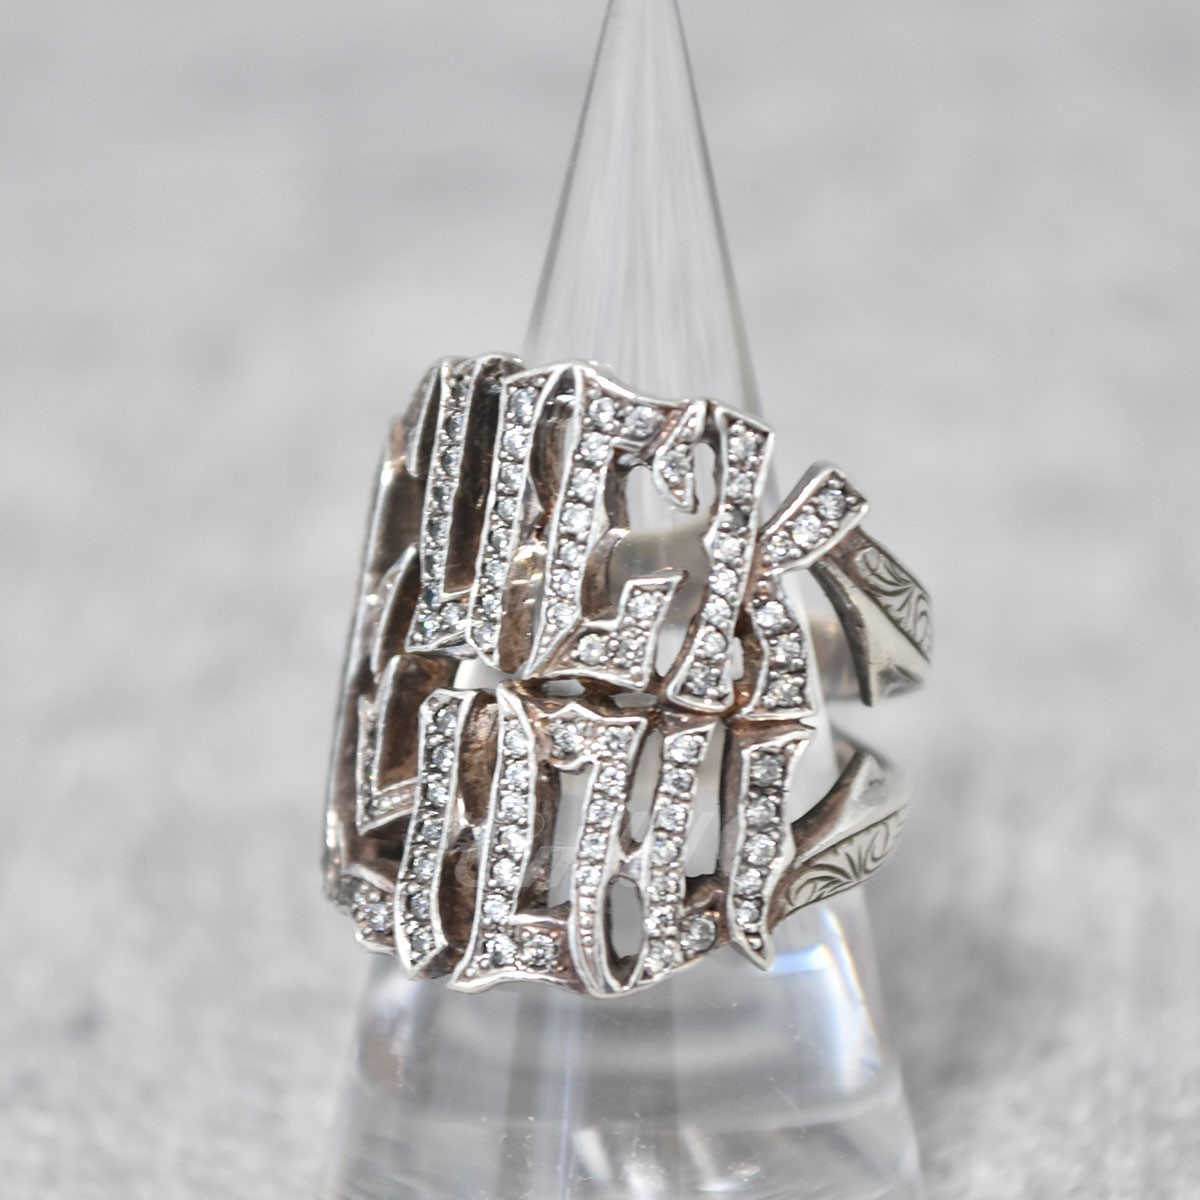 【中古】Loree Rodkin リング ETCHED PAVE FUCK YOU RING 【送料無料】 【203046】 【KIND1550】